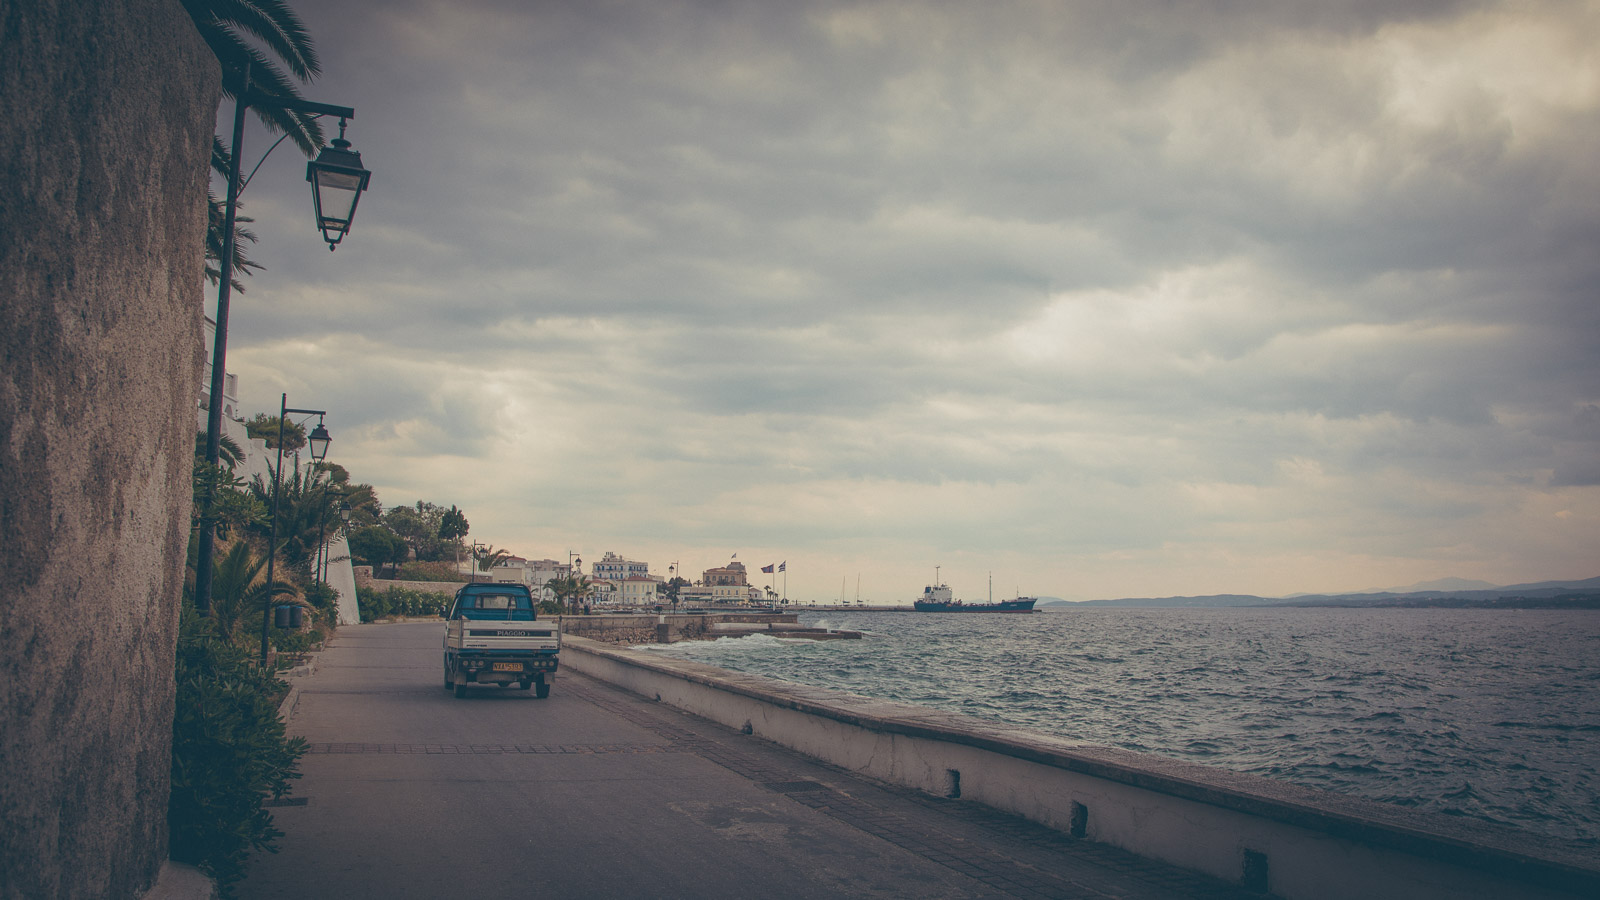 Truck on the Spetses